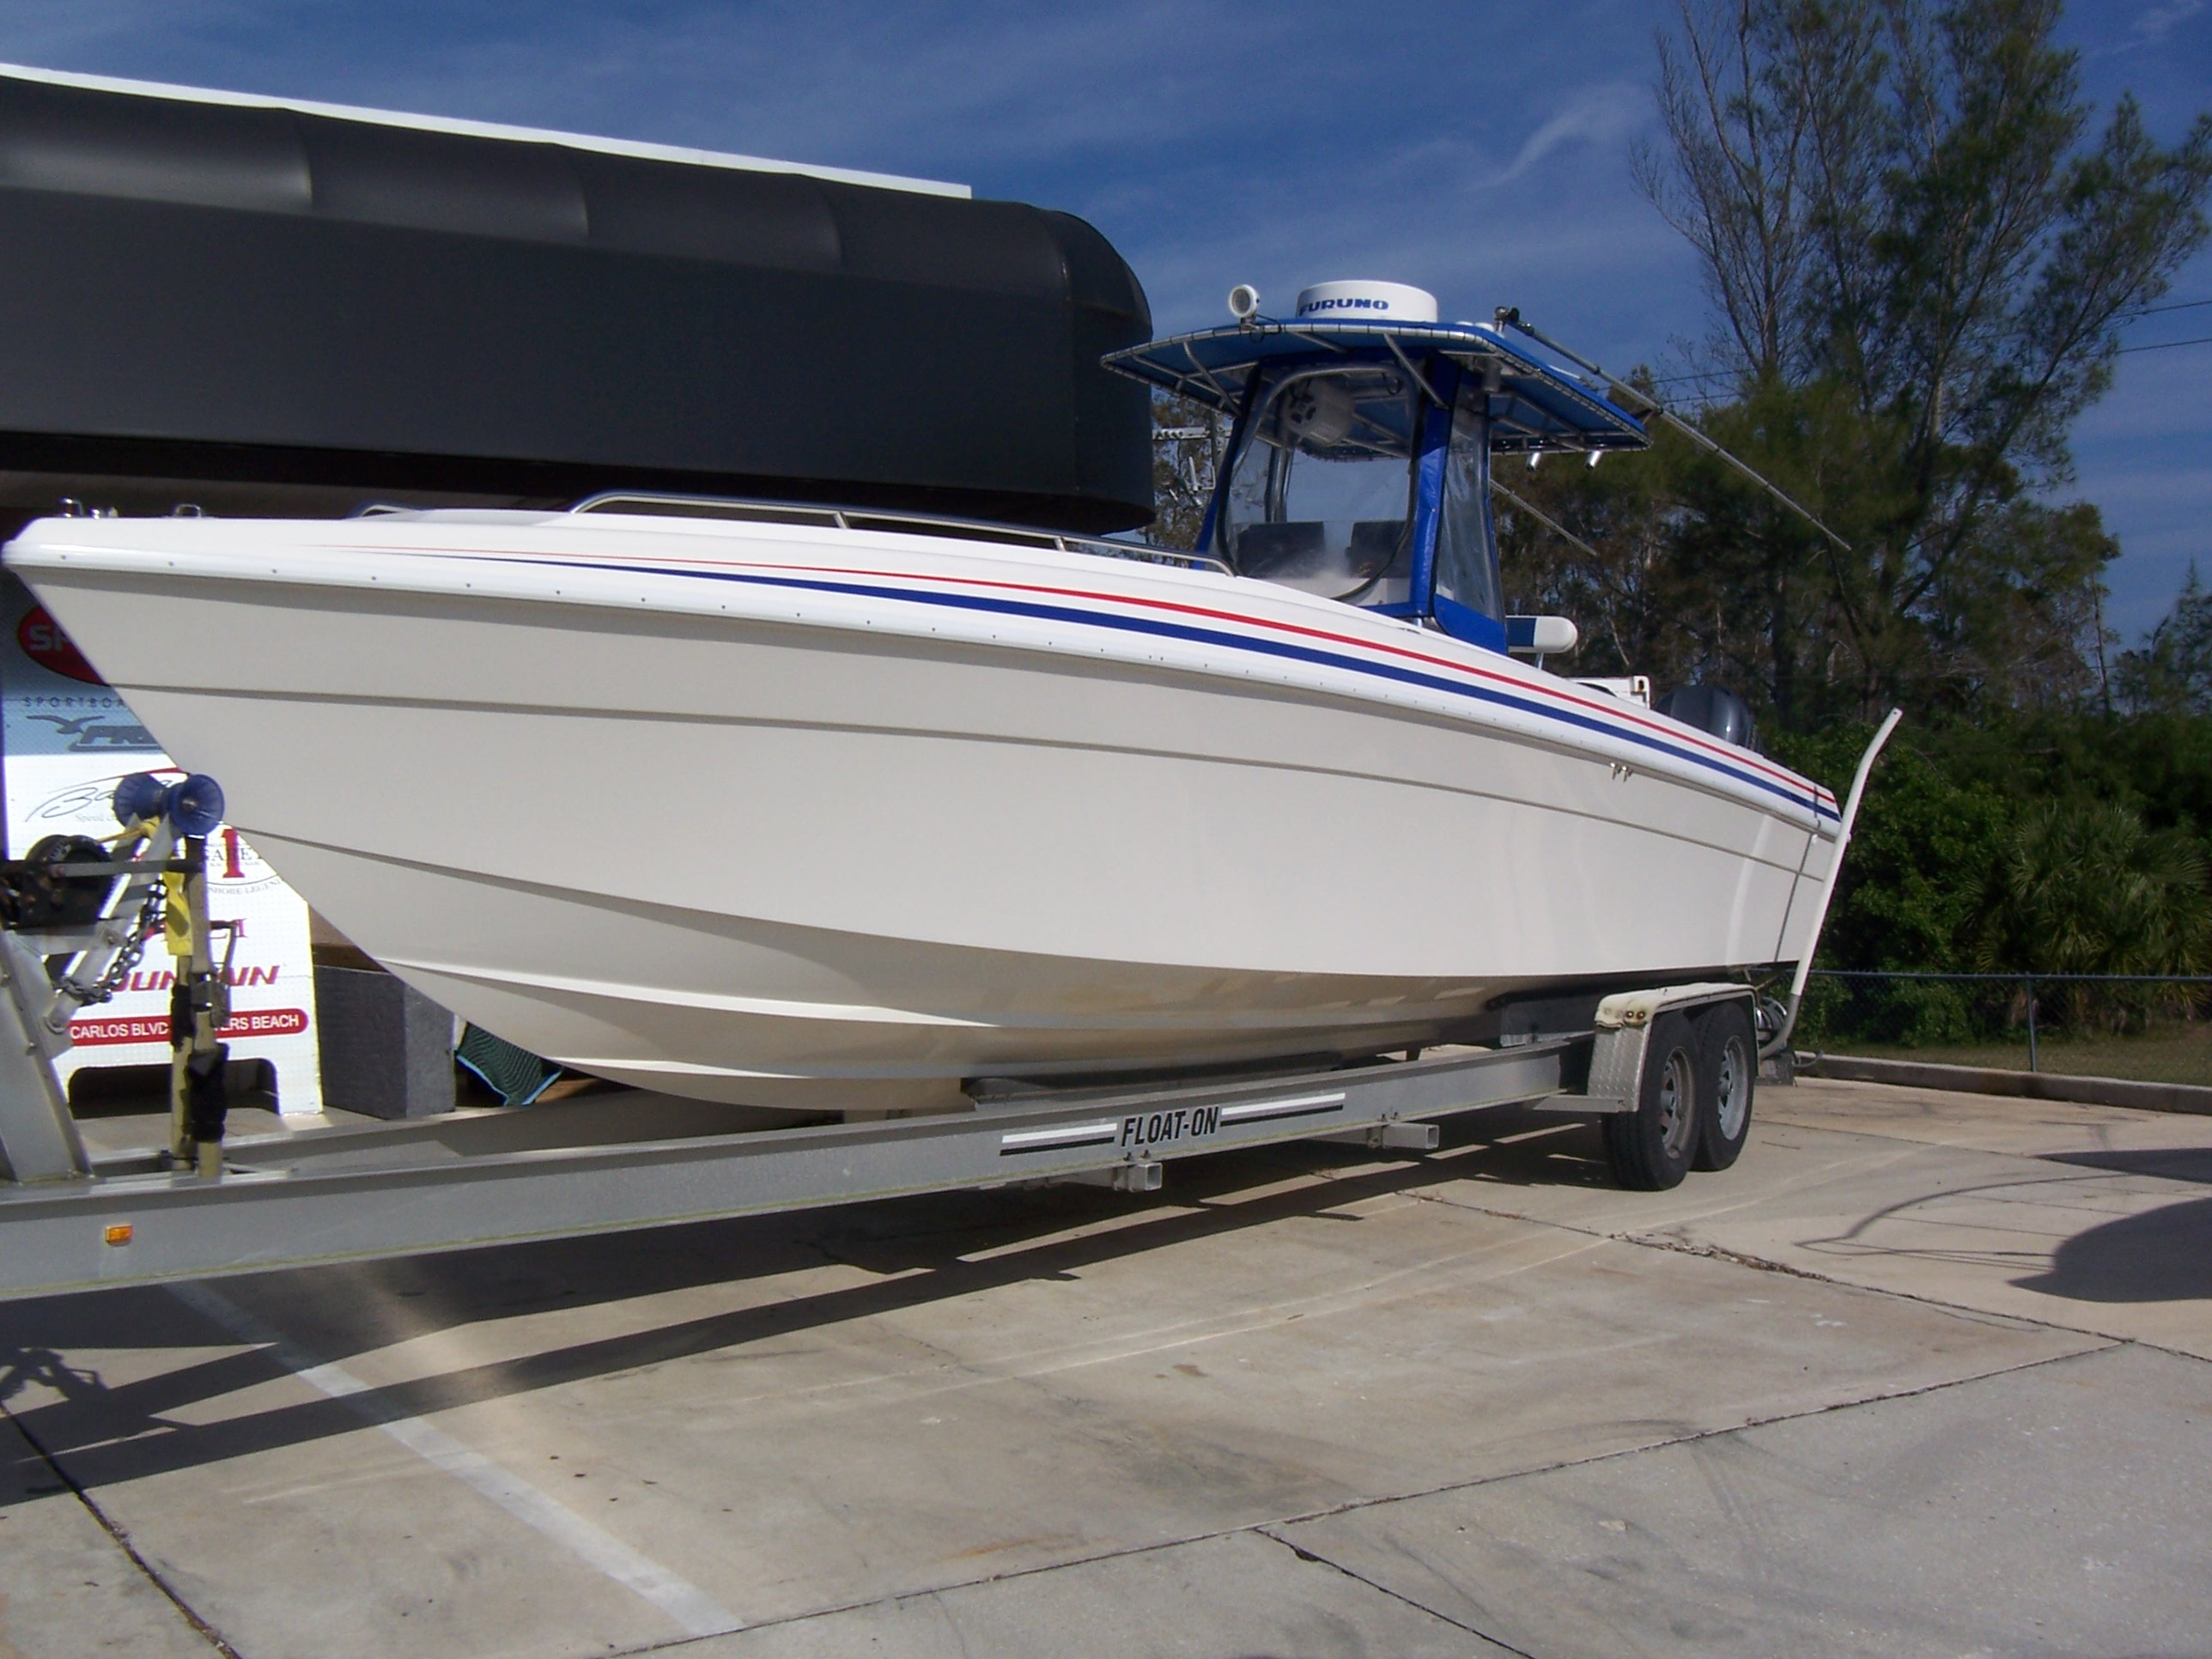 33 powerplay center console boats fishing and marine for Center console fishing boats for sale